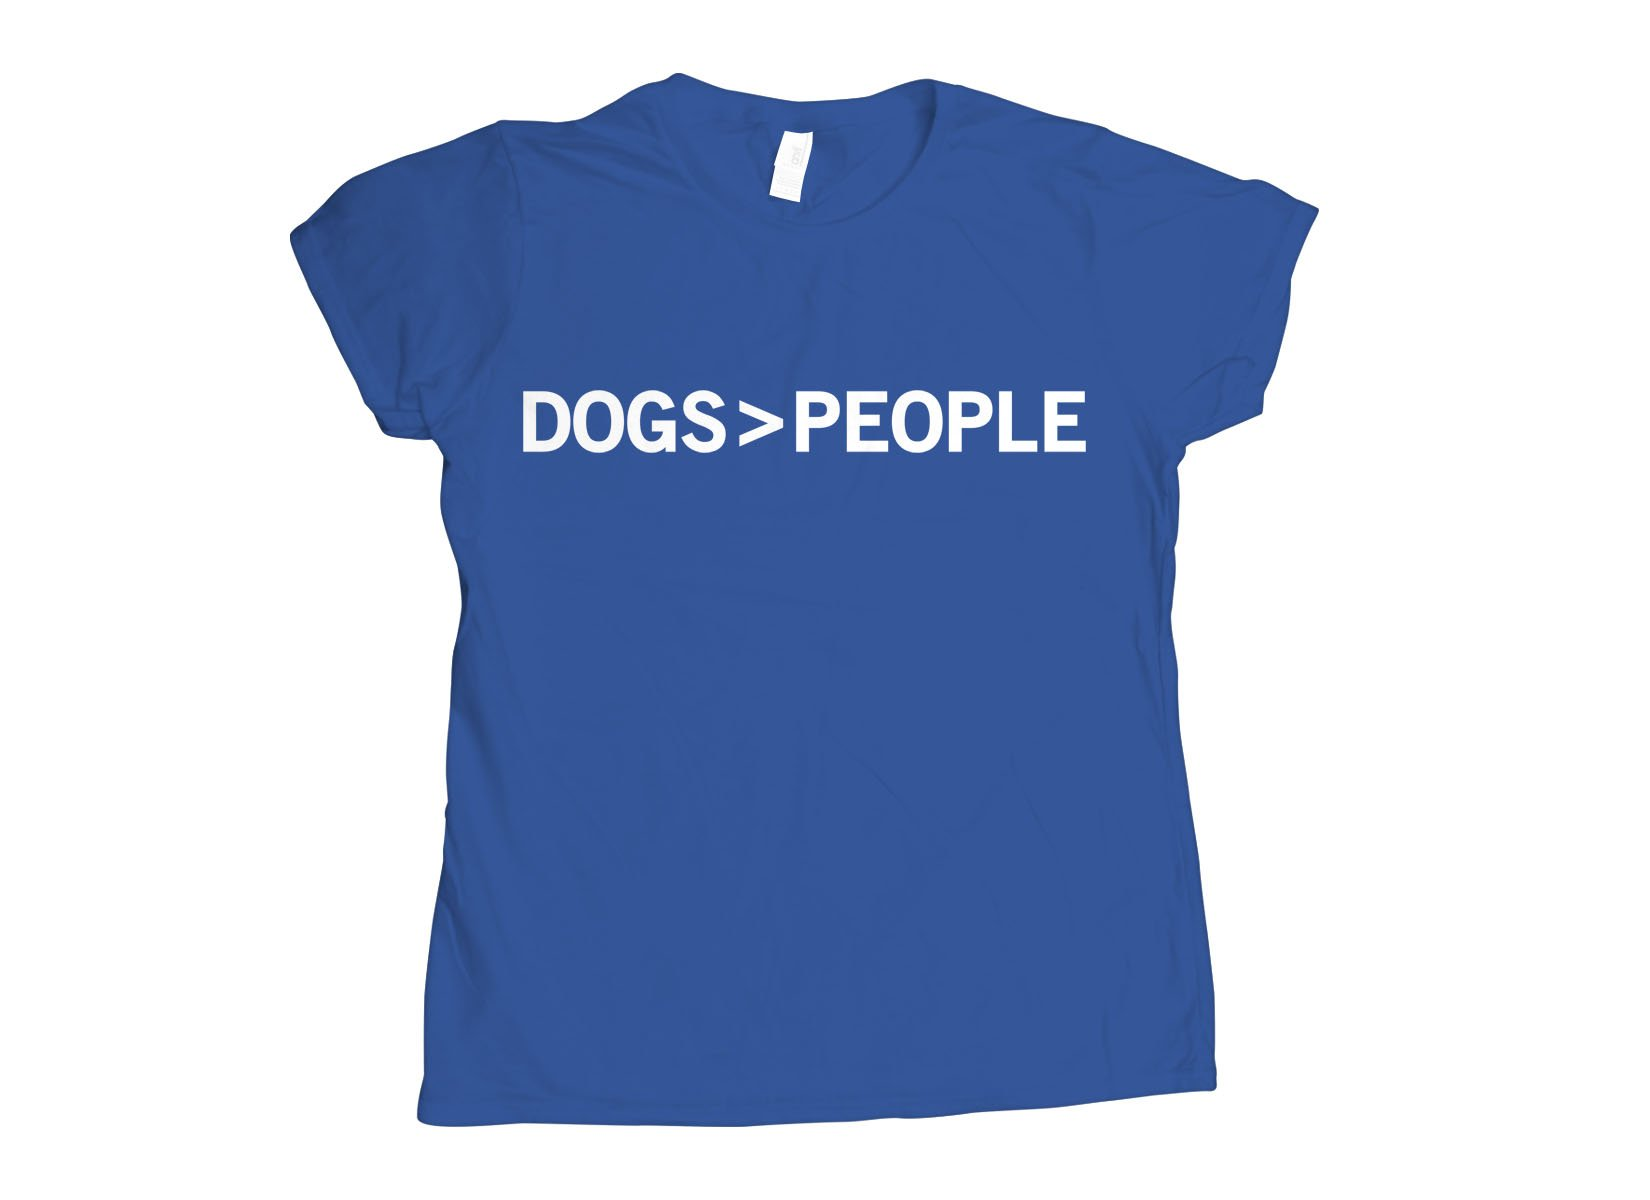 Dogs>People on Womens T-Shirt